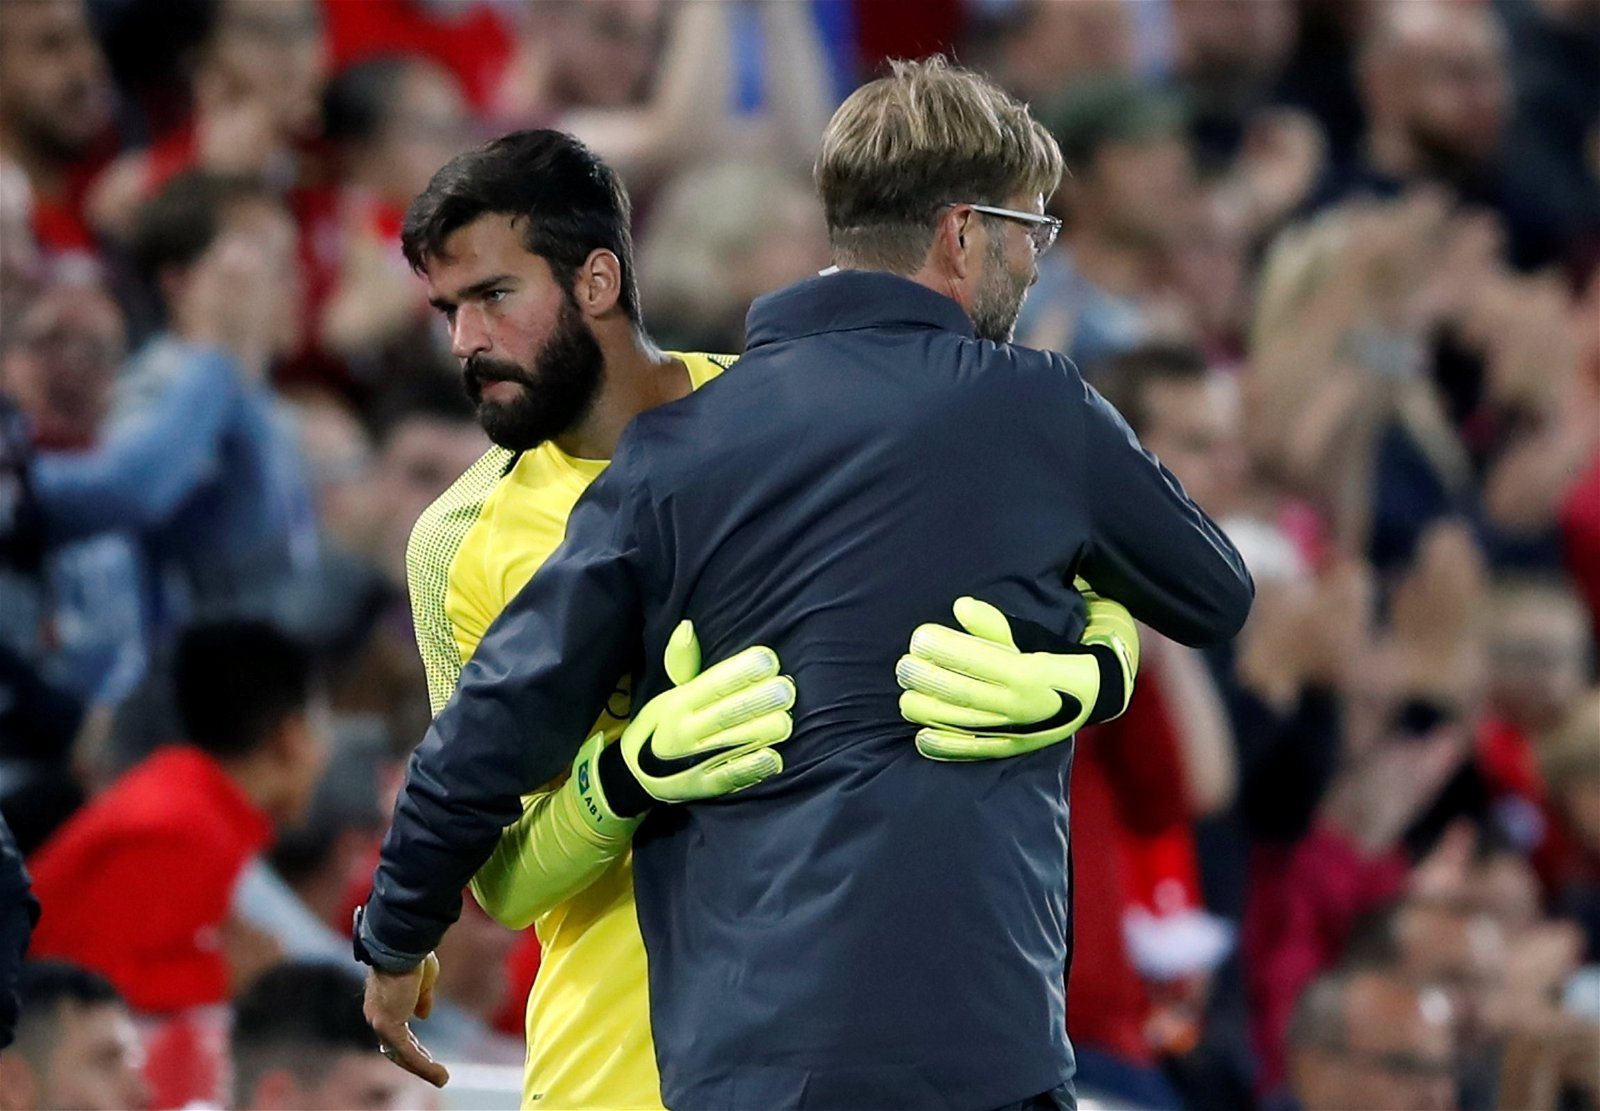 Jurgen Klopp hugs goalkeeper Alisson